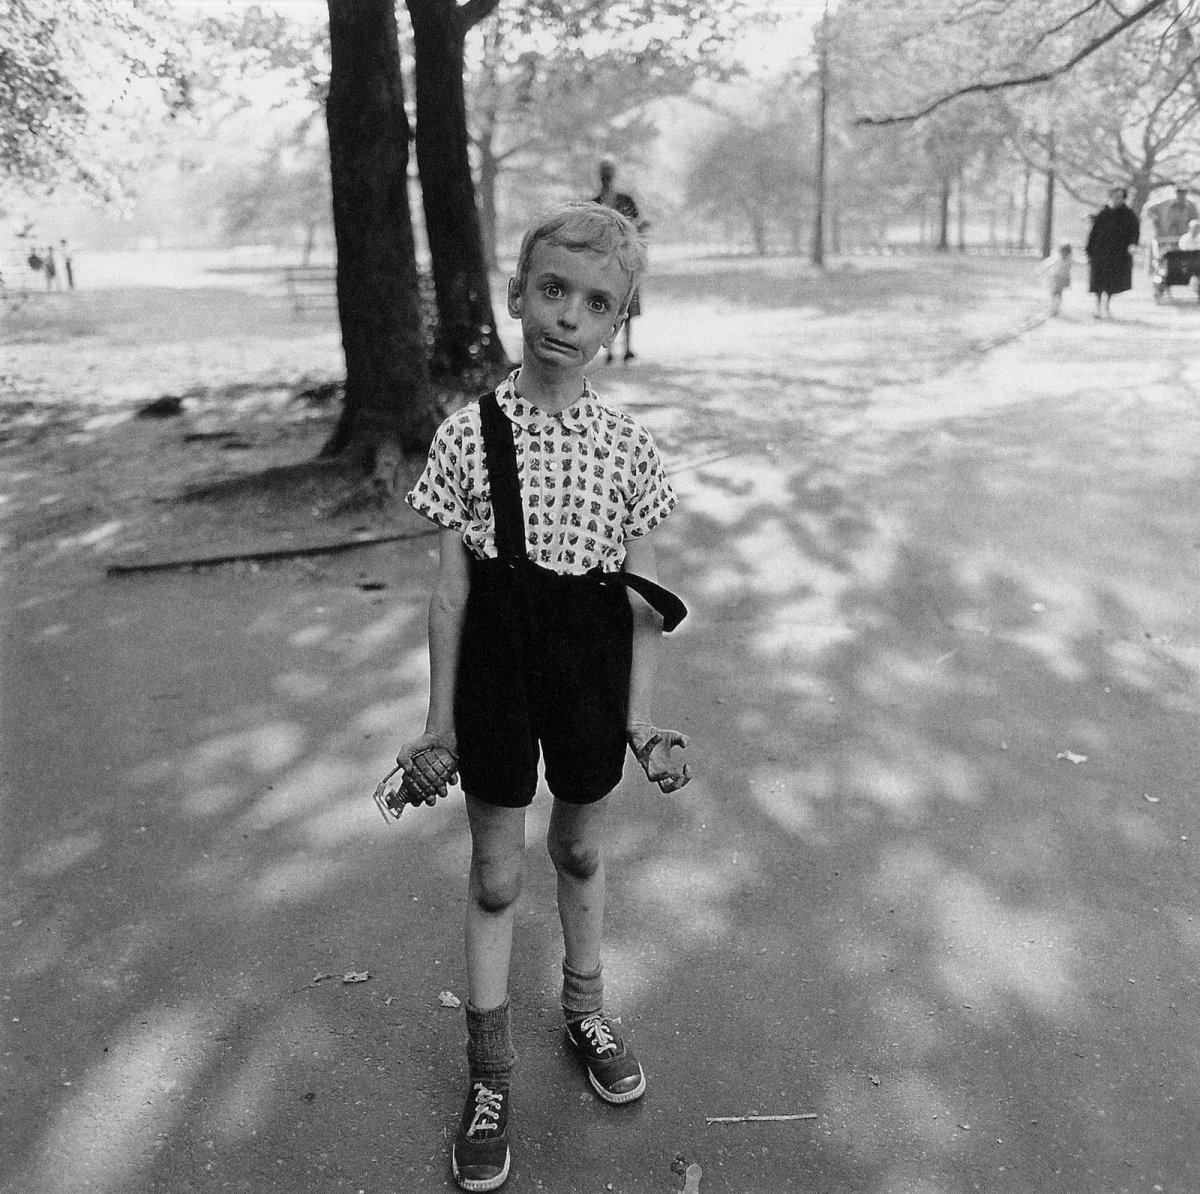 diane-arbus-child-with-toy-hand-grenade-in-central-park-new-york-city-1962.jpg